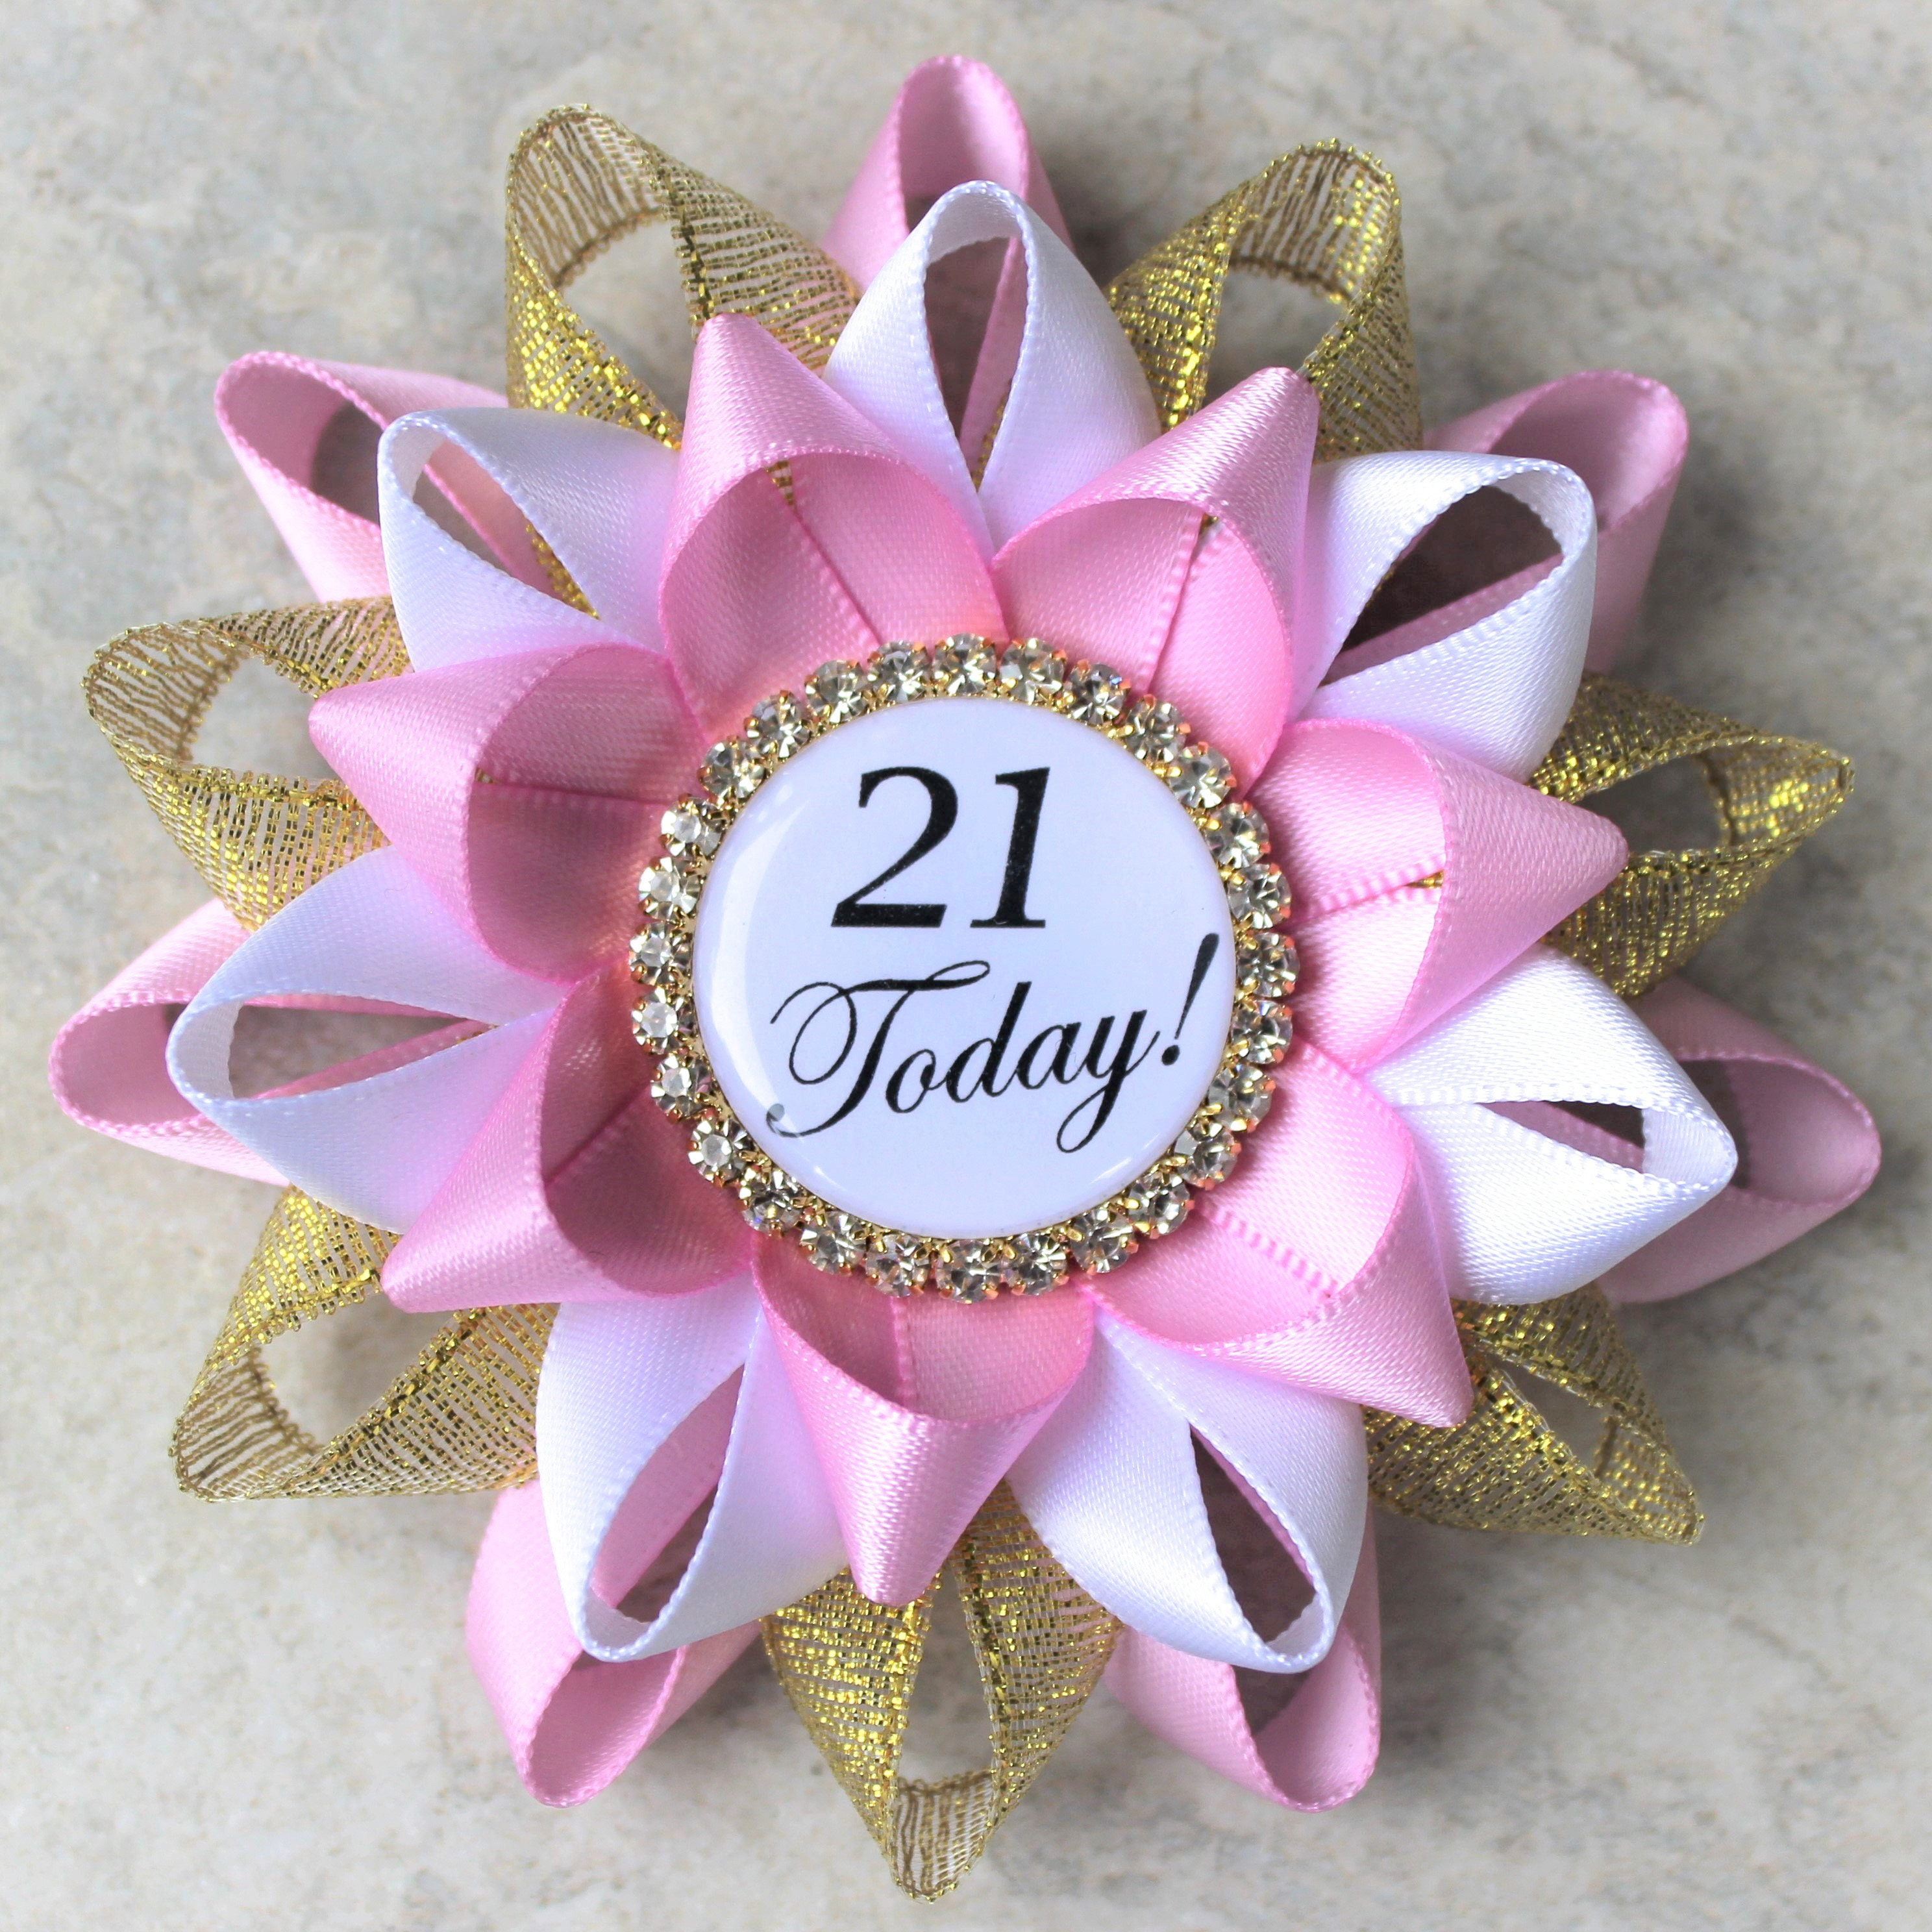 21st birthday pin, 21st birthday party decorations, gift for her